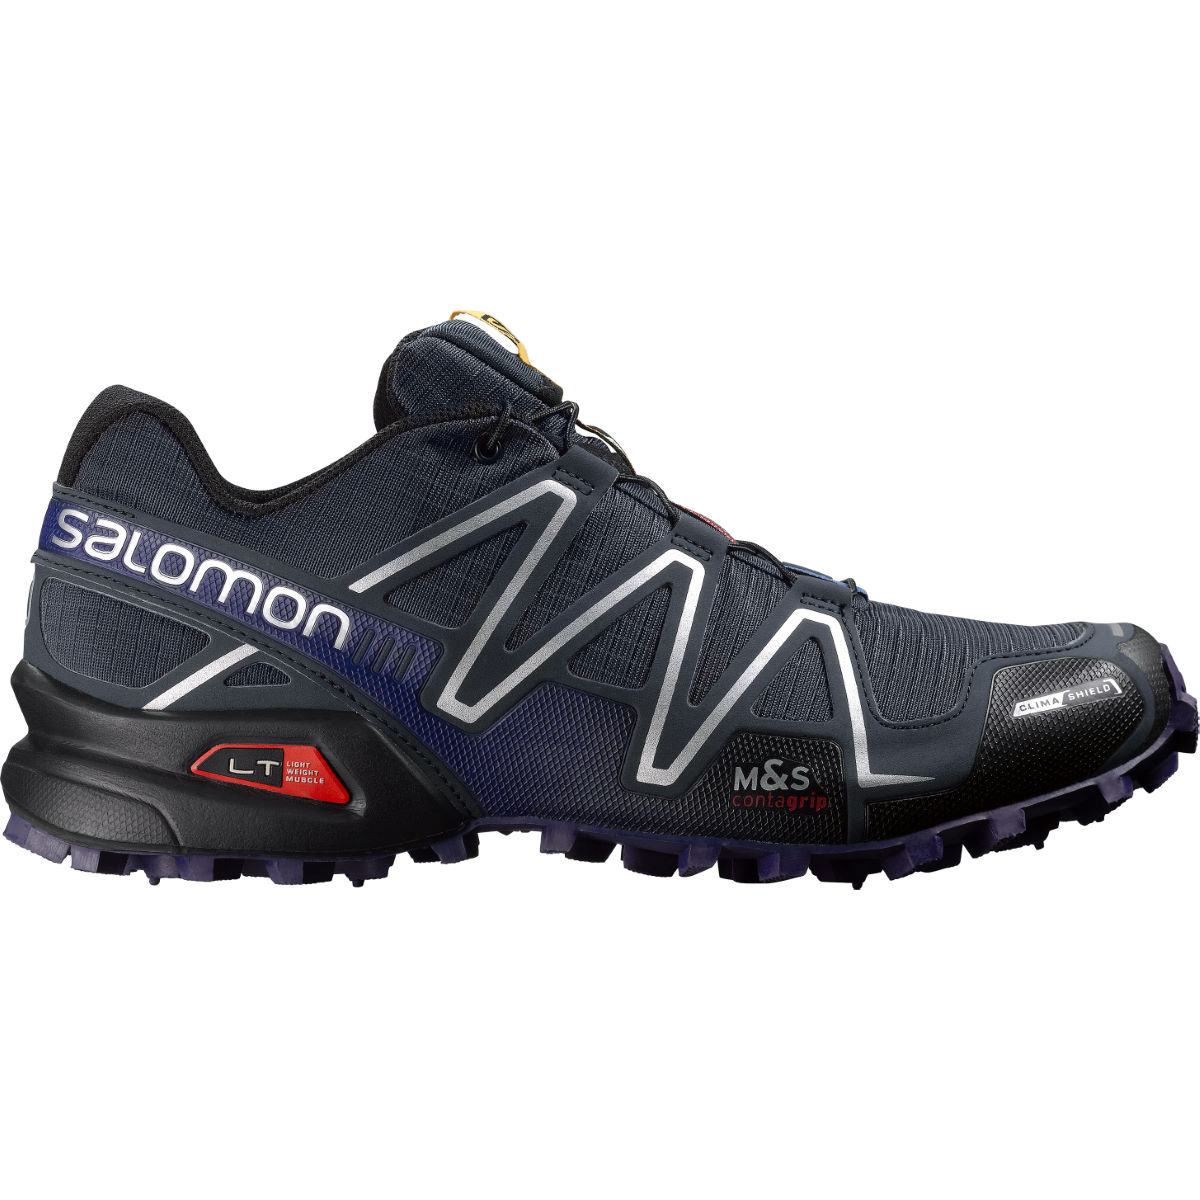 Salomon Speedcross 3 CS Shoes (AW15)